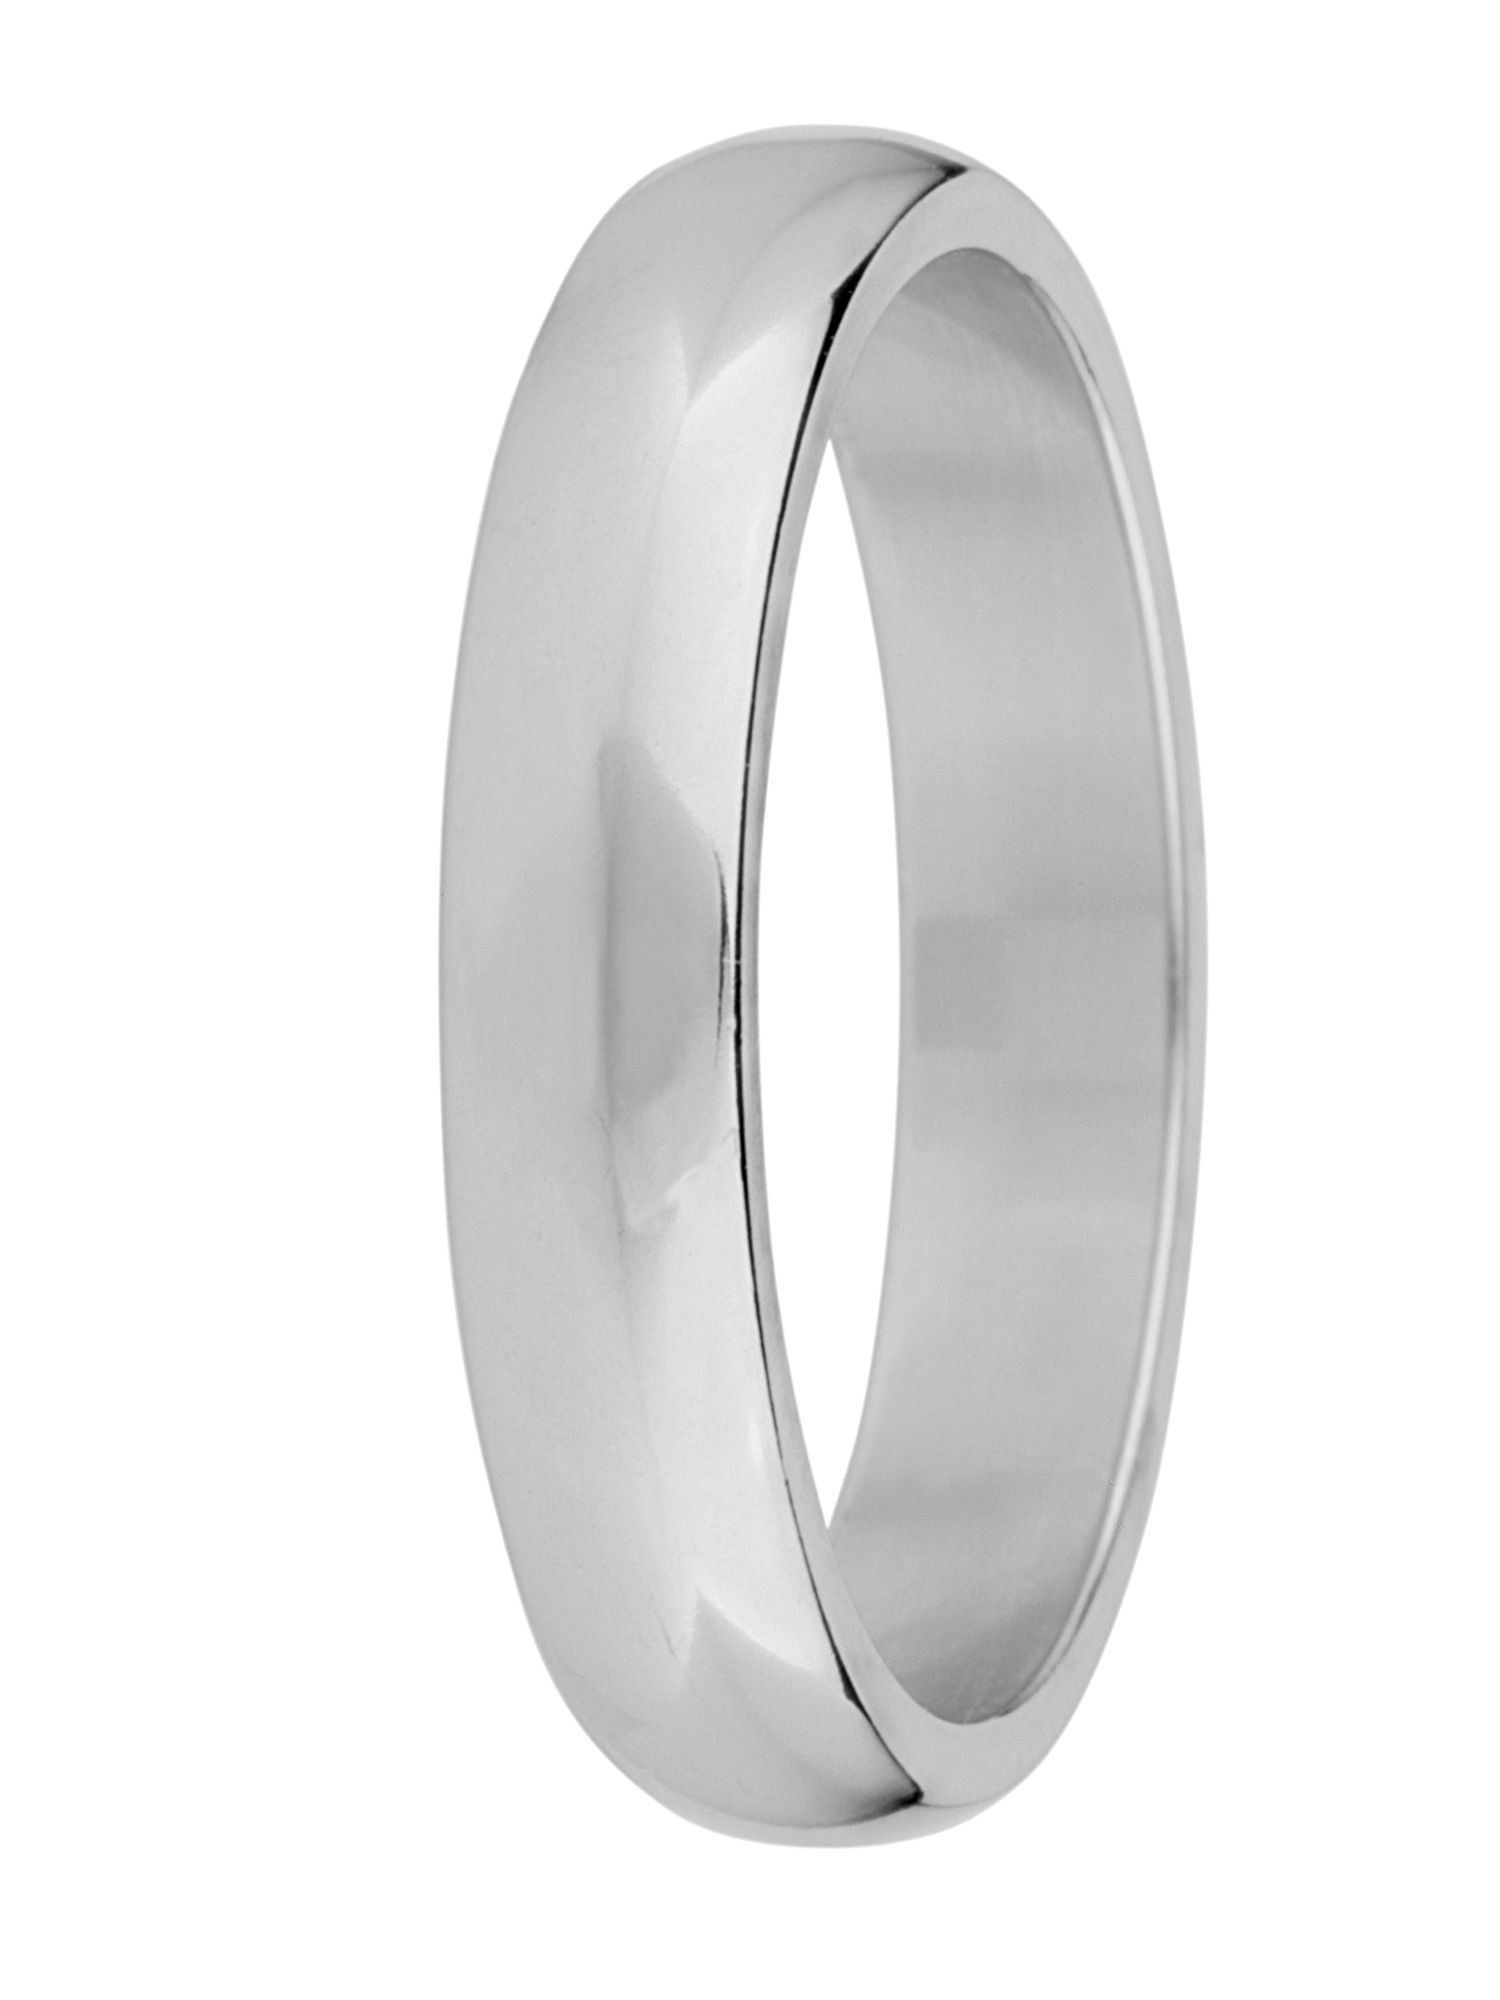 Brides 18ct gold 4mm court wedding ring - White Gold